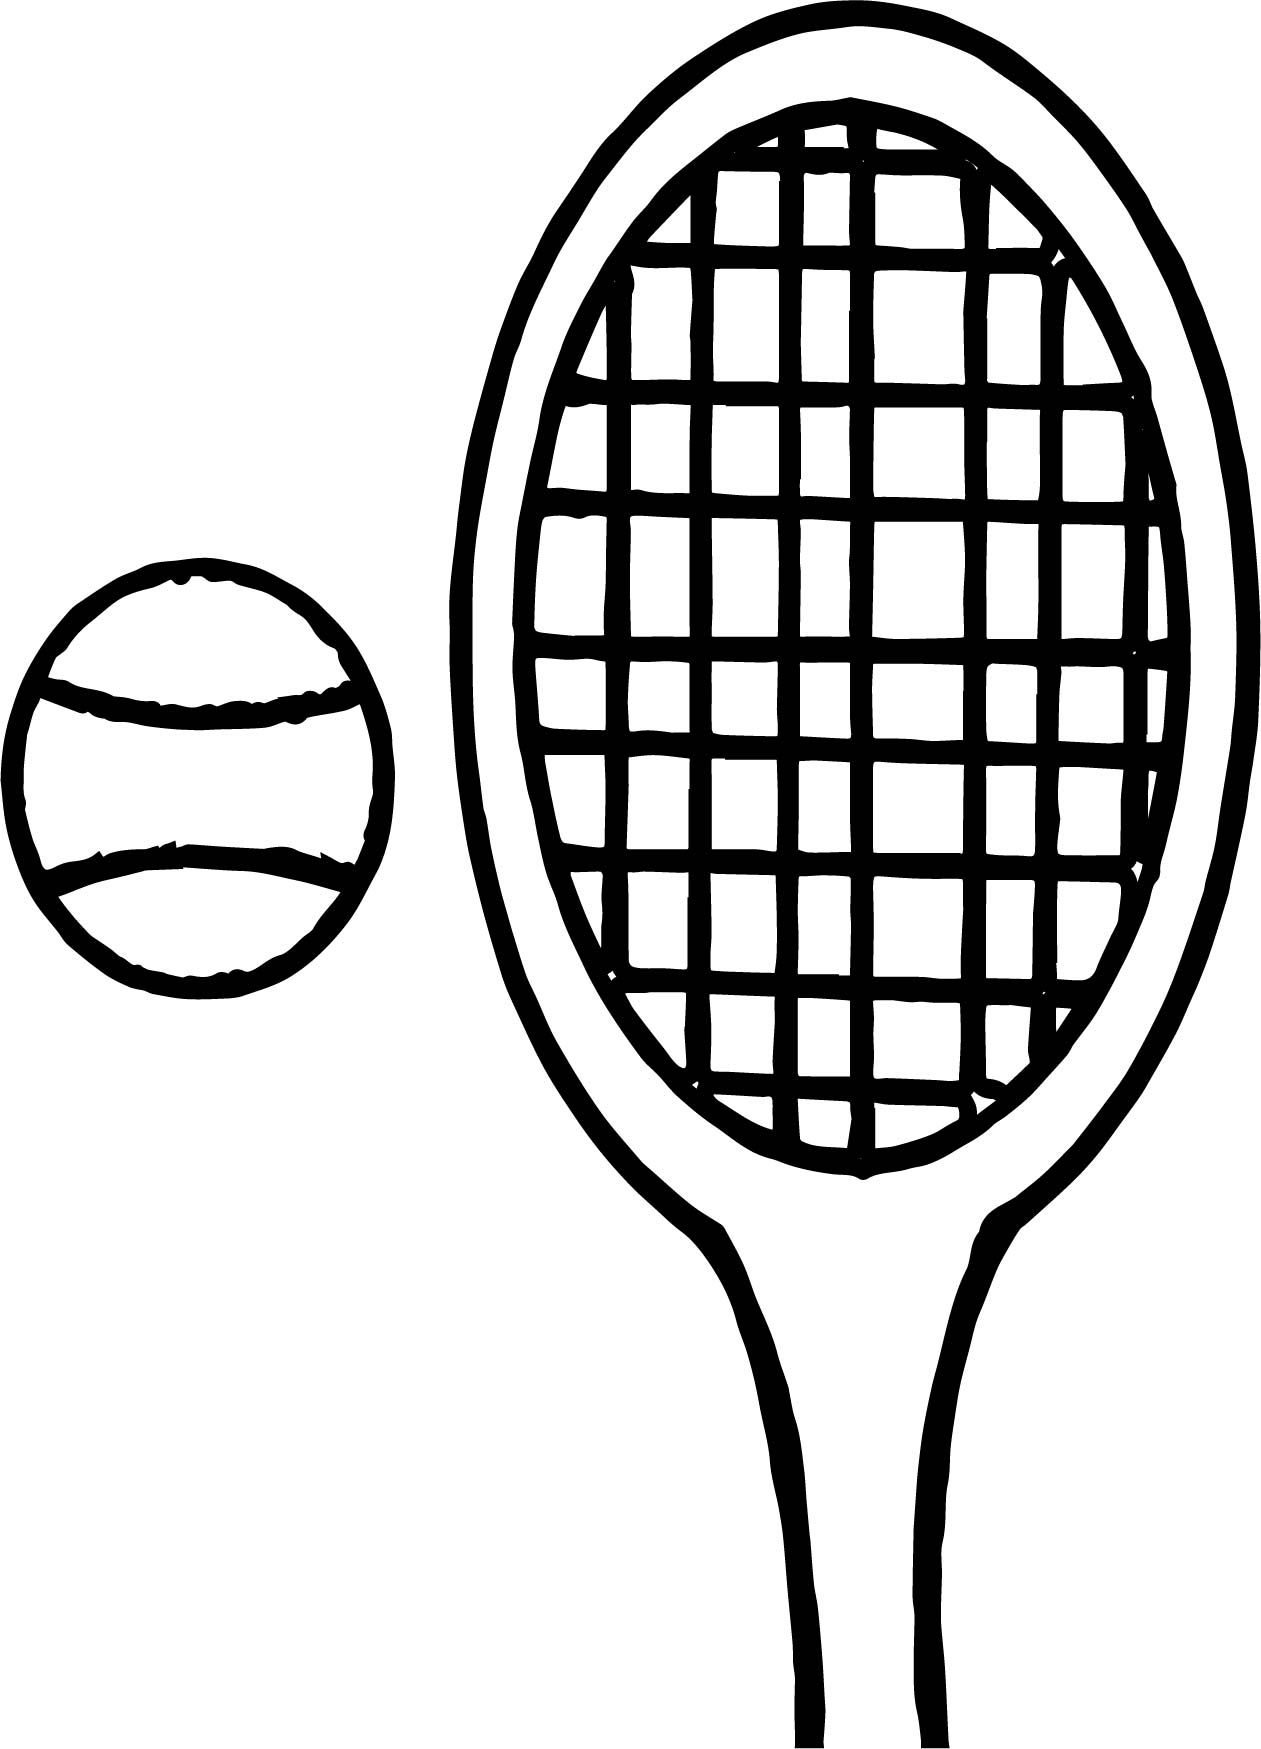 Cool Tennis Crab Free Coloring Page Images Free Coloring Pages